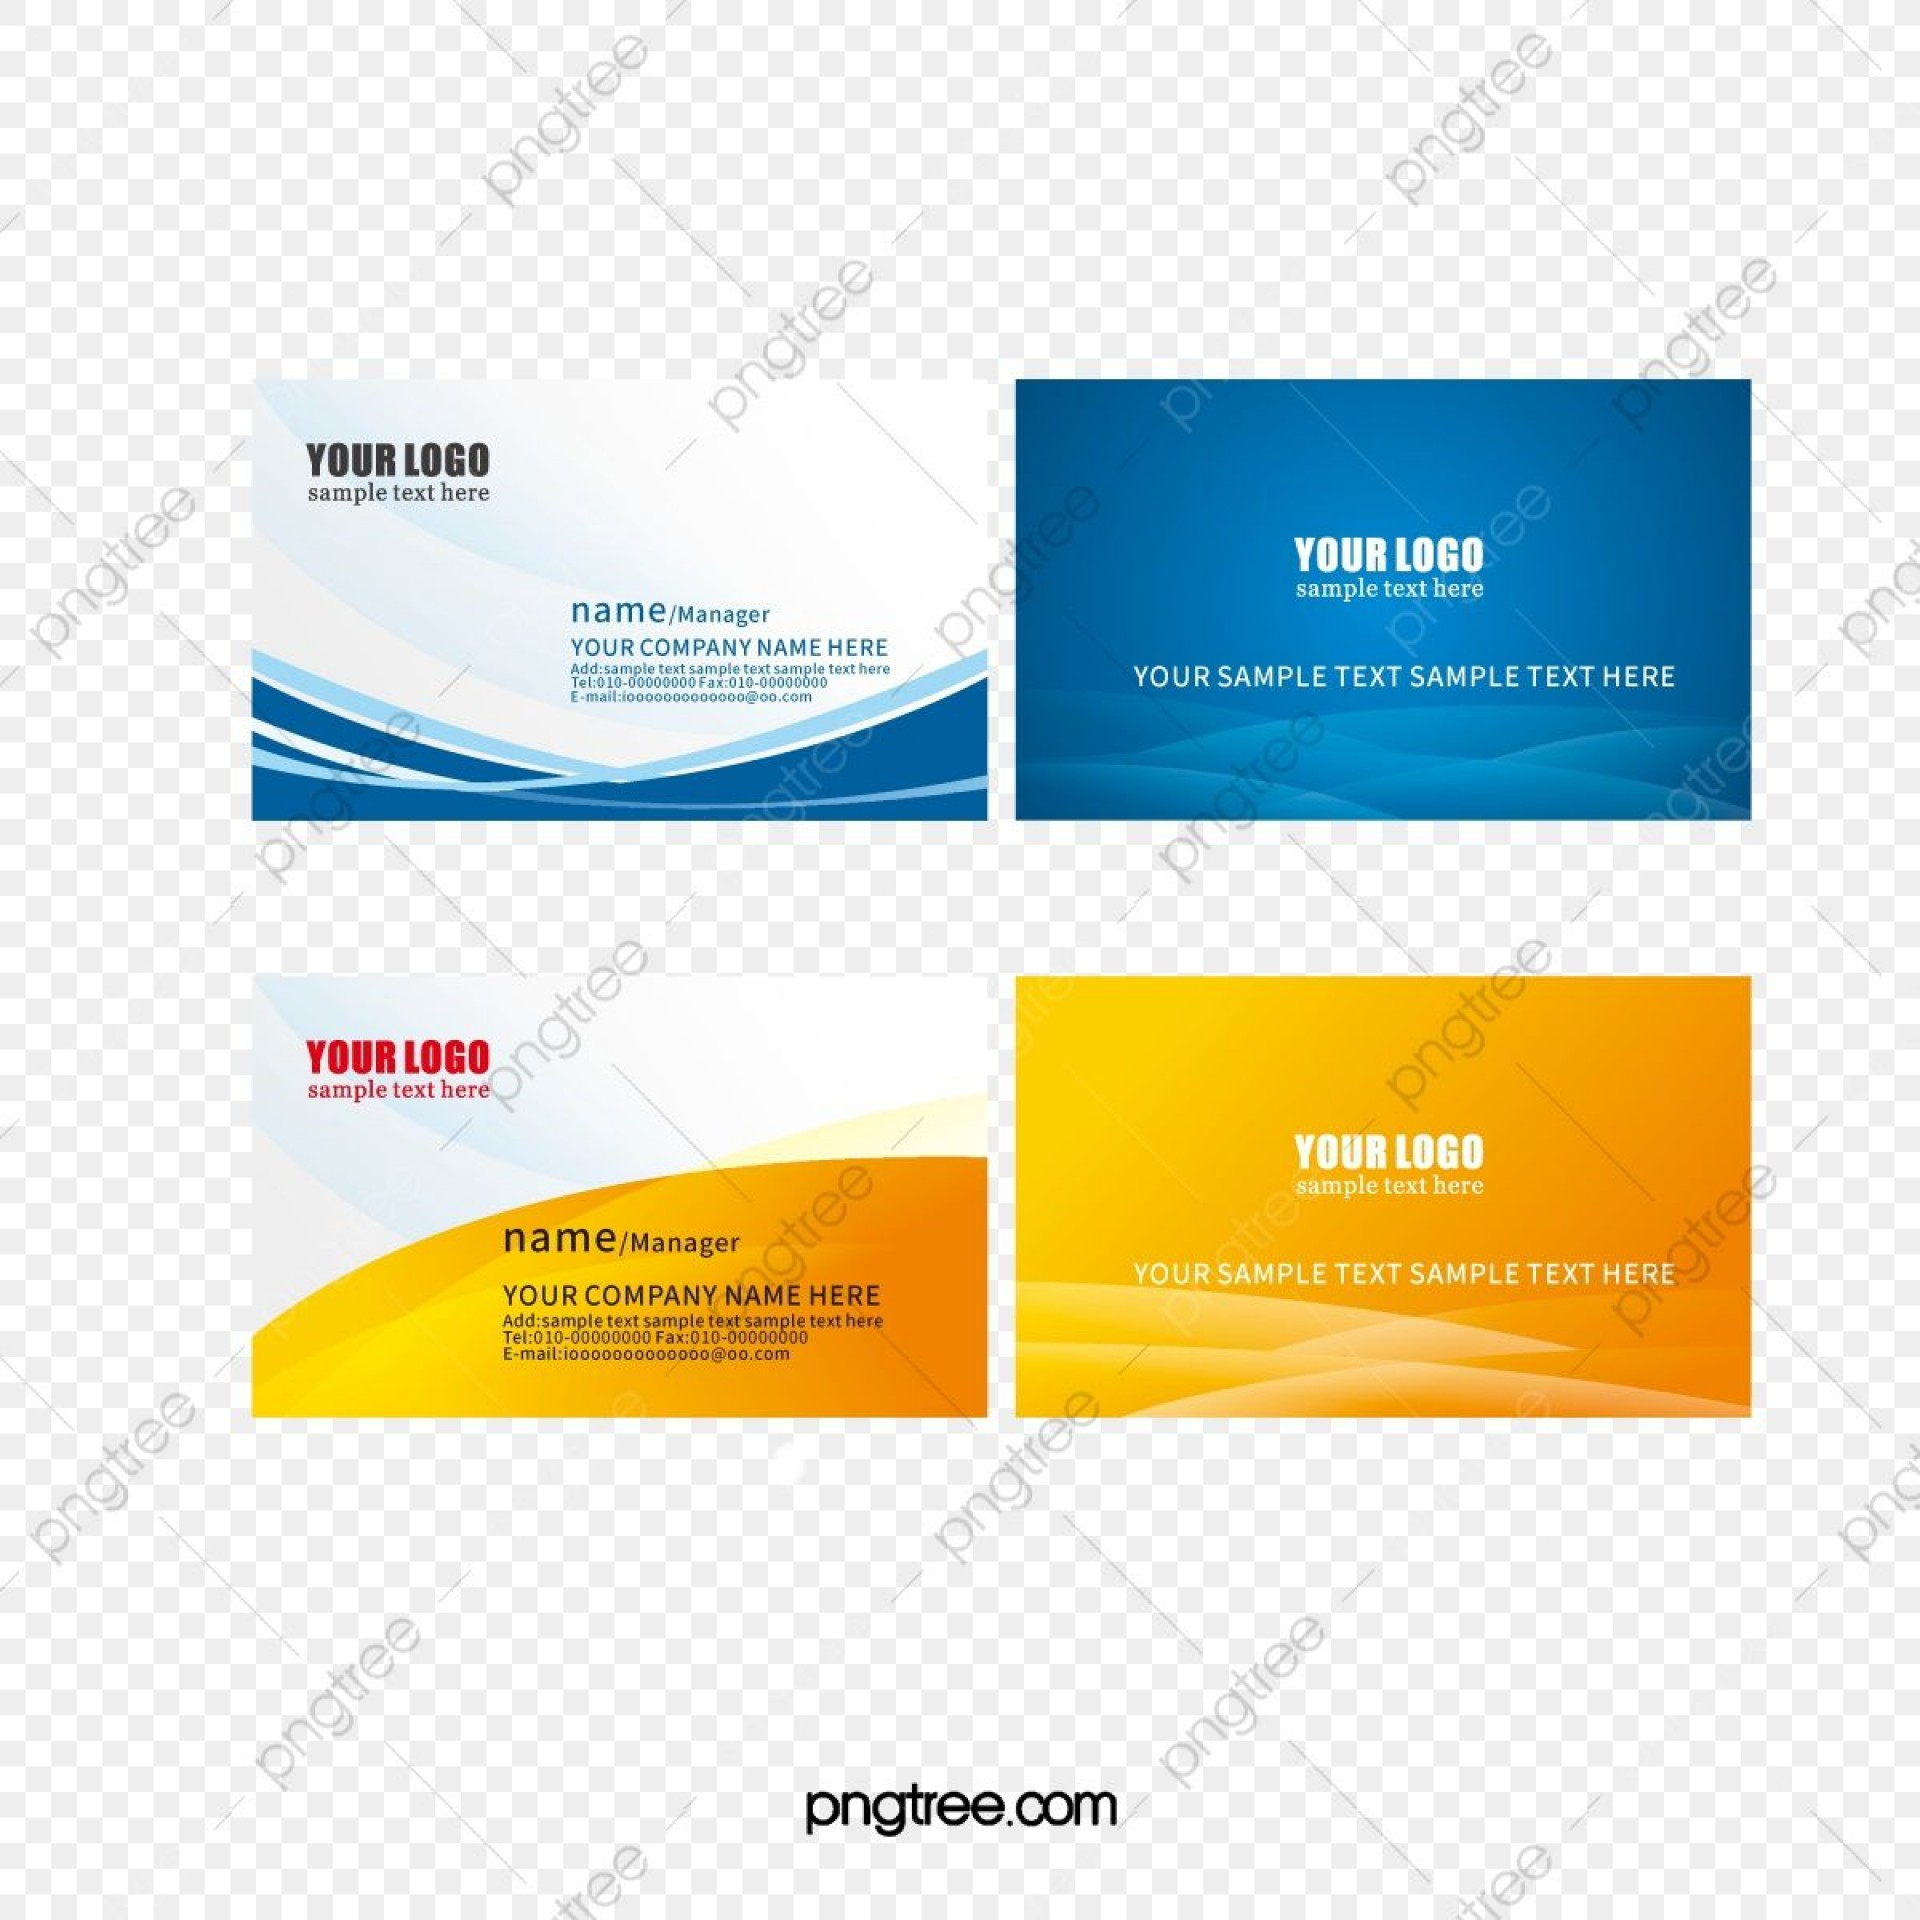 004 Formidable Name Card Template Free Download Picture  Table Ai Wedding1920